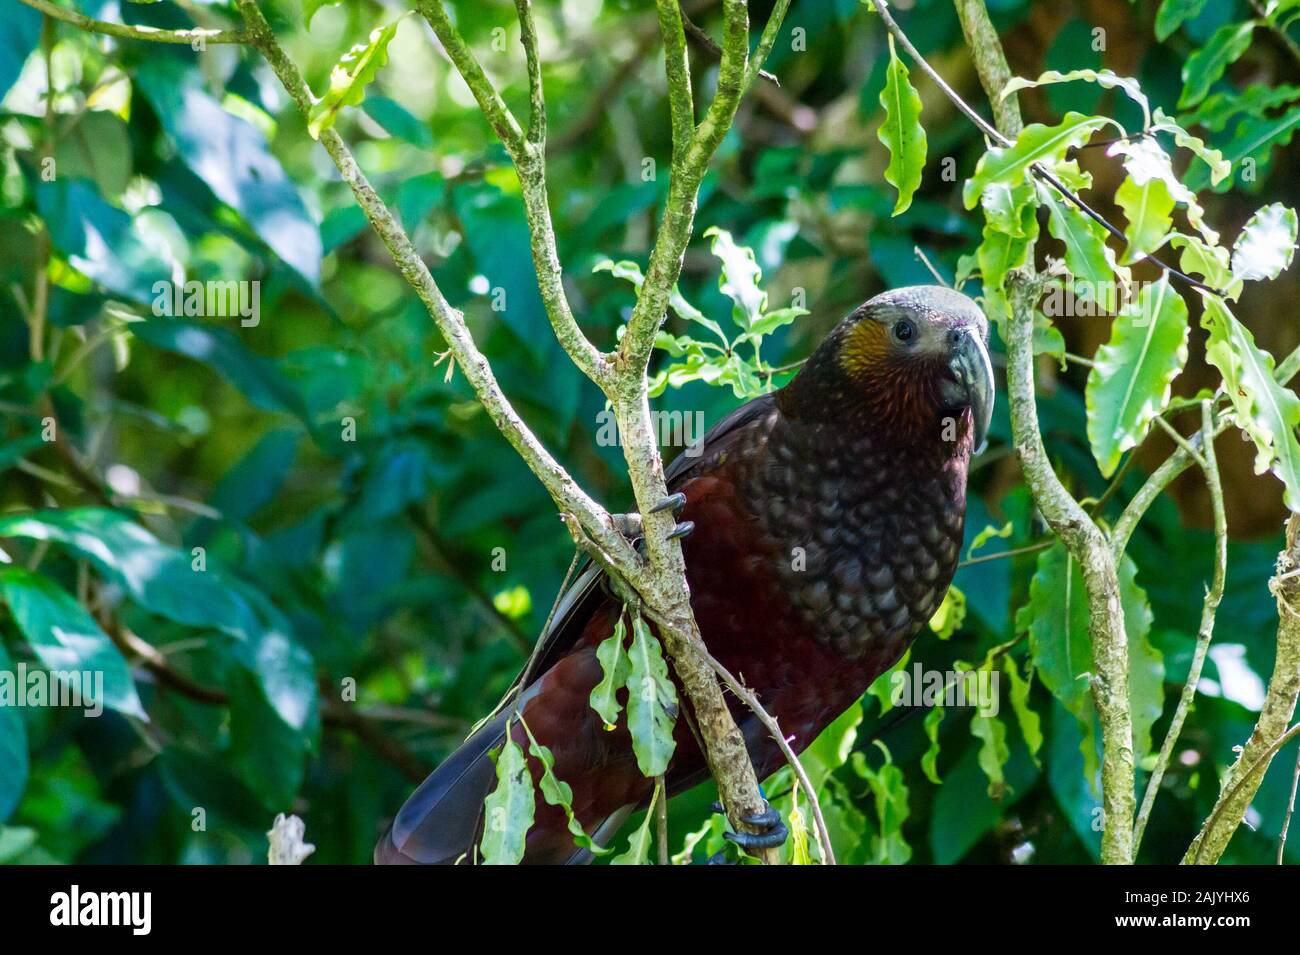 new-zealand-kaka-nestor-meridionalis-on-a-mapou-tree-red-matipo-myrsine-australis-at-zealandia-wildlife-sanctuary-wellington-new-zealand-2AJYHX6.jpg